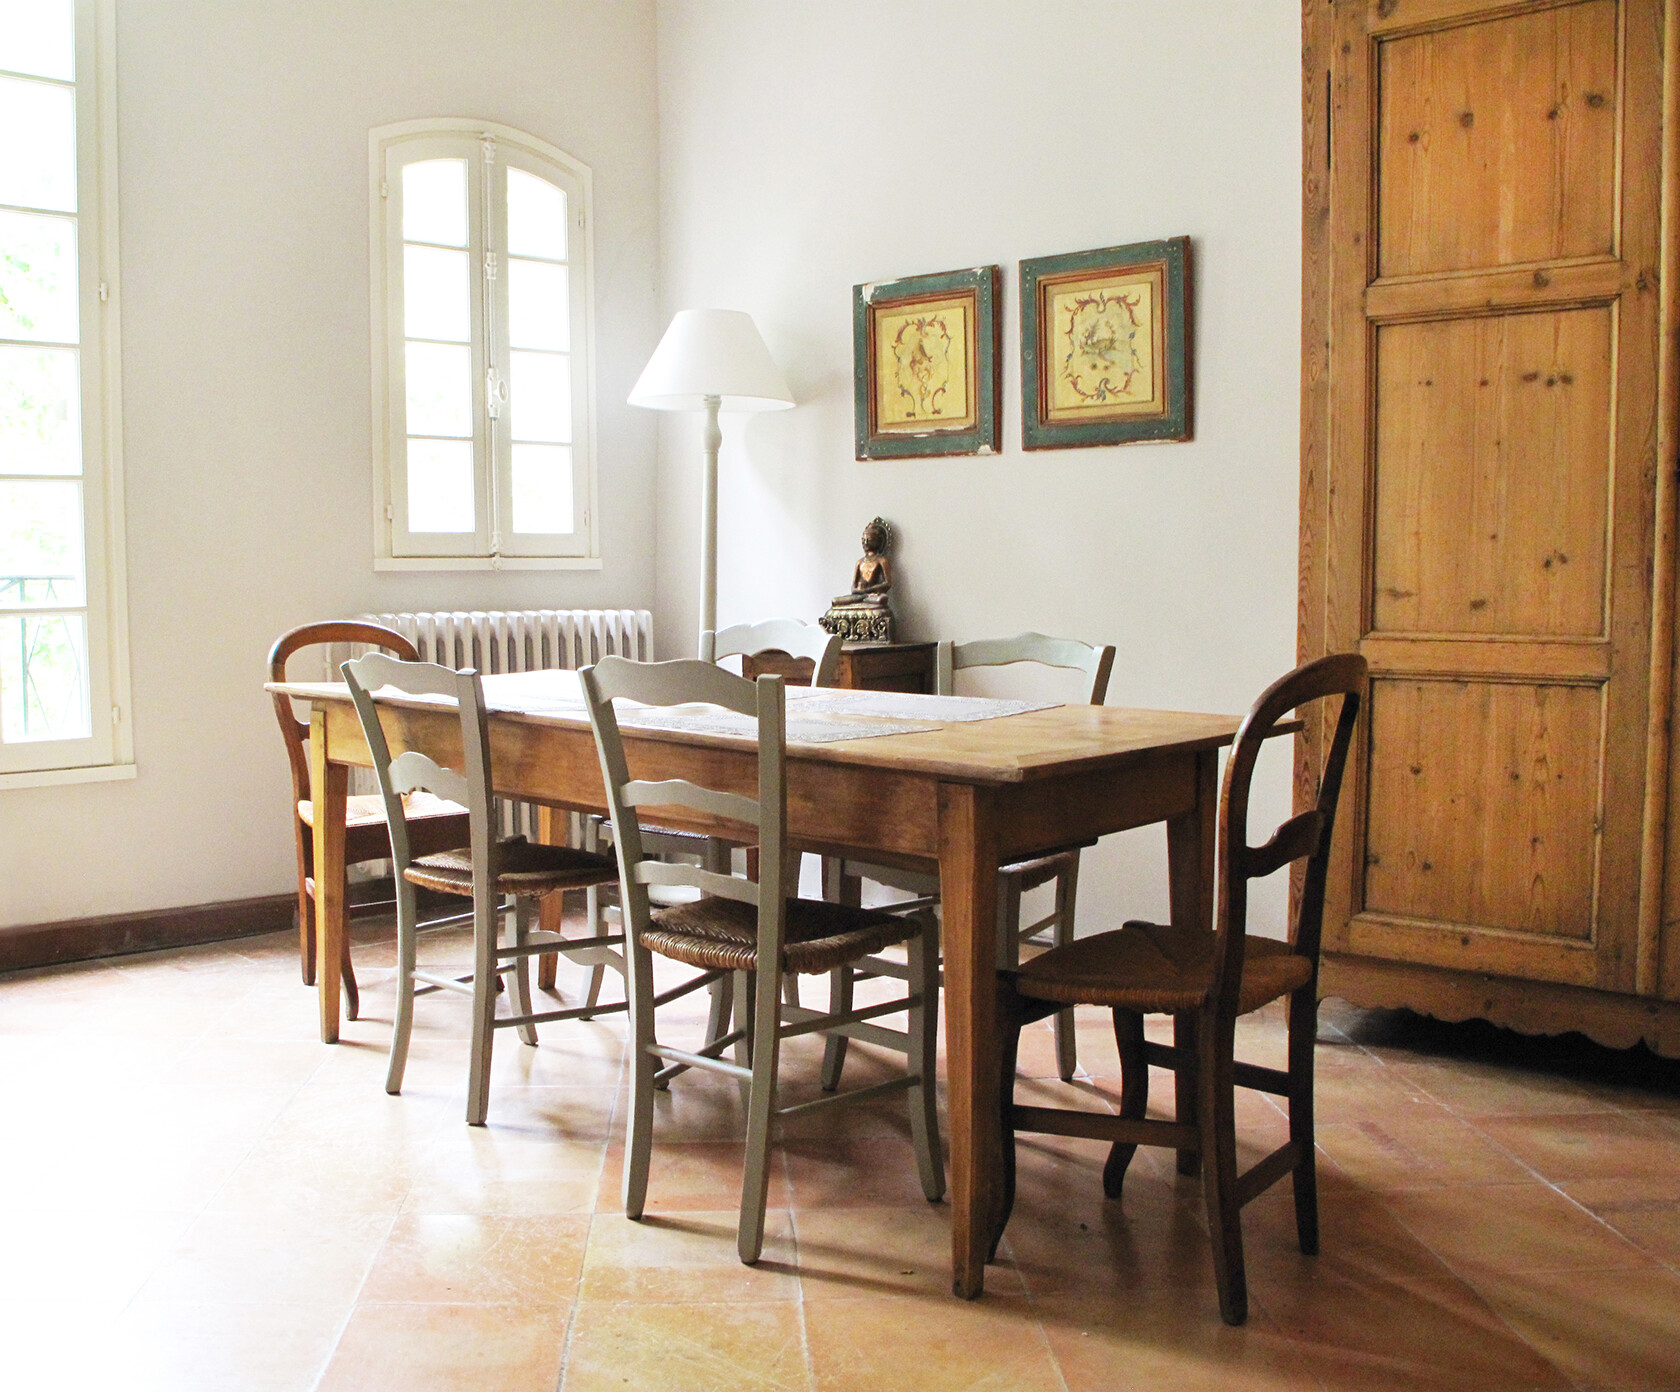 Uzes Holiday Apartment Rental dining corner